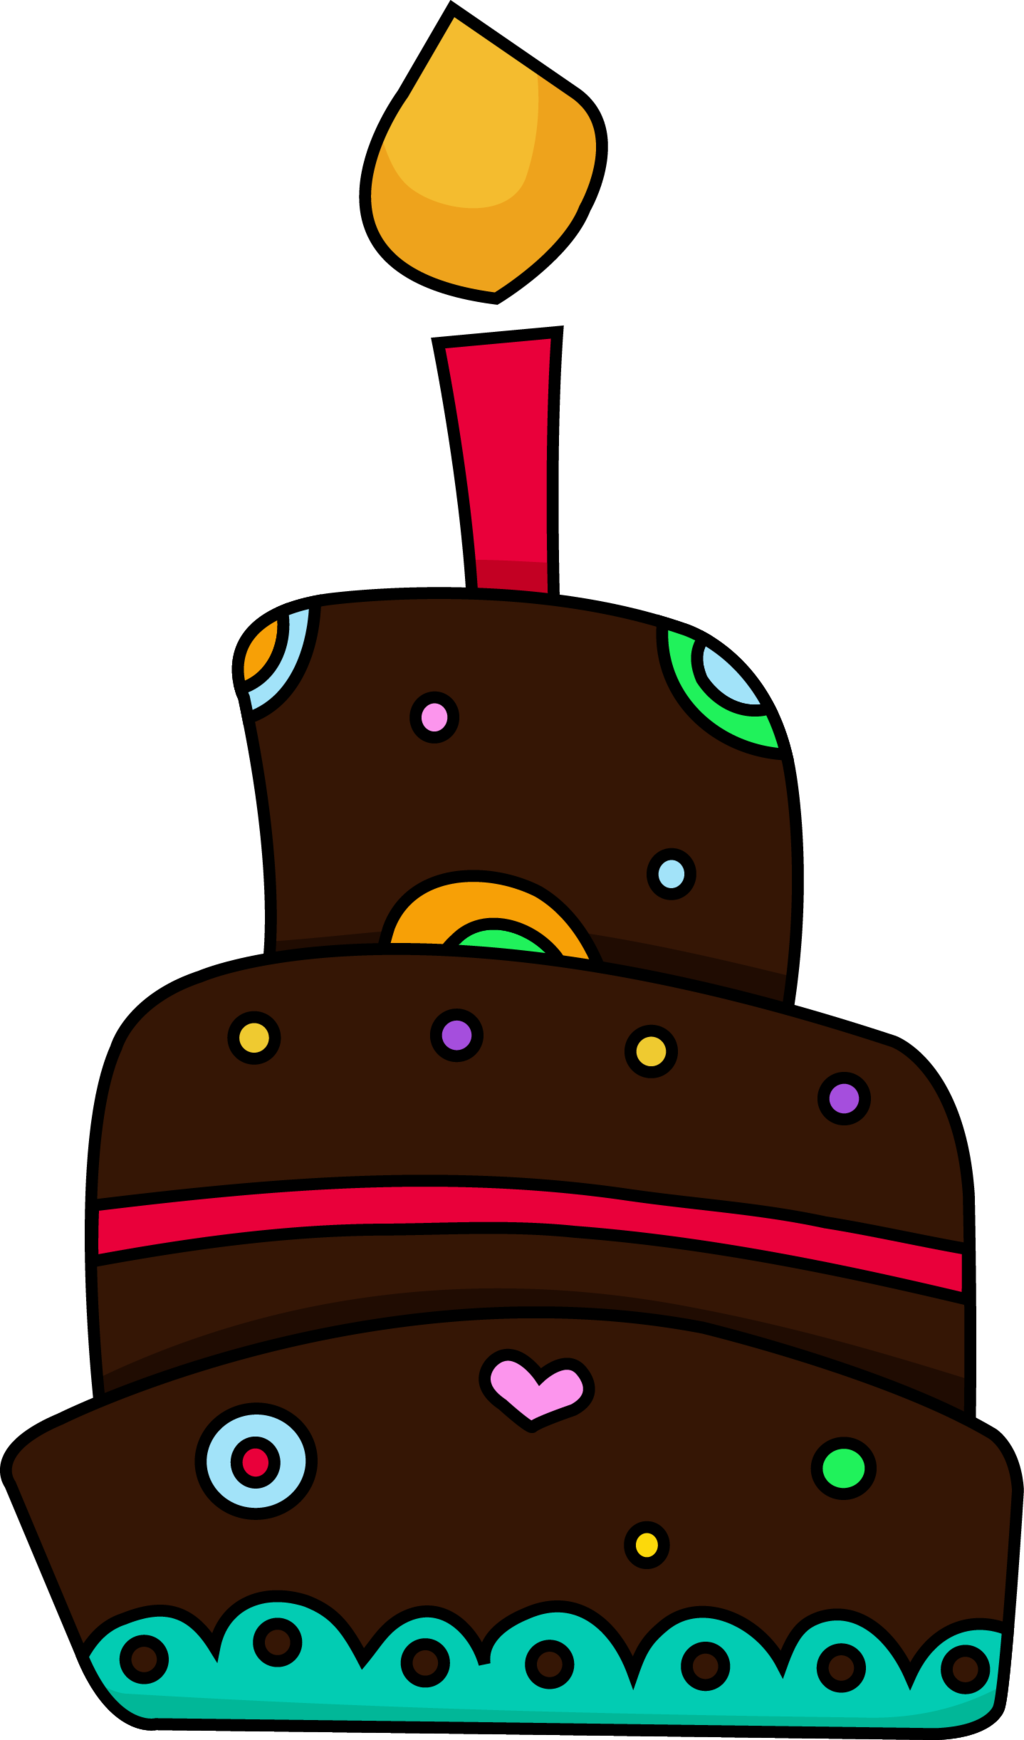 Free clip art birthday cake image freeuse Chocolate Cake Clipart - Clipart Kid image freeuse